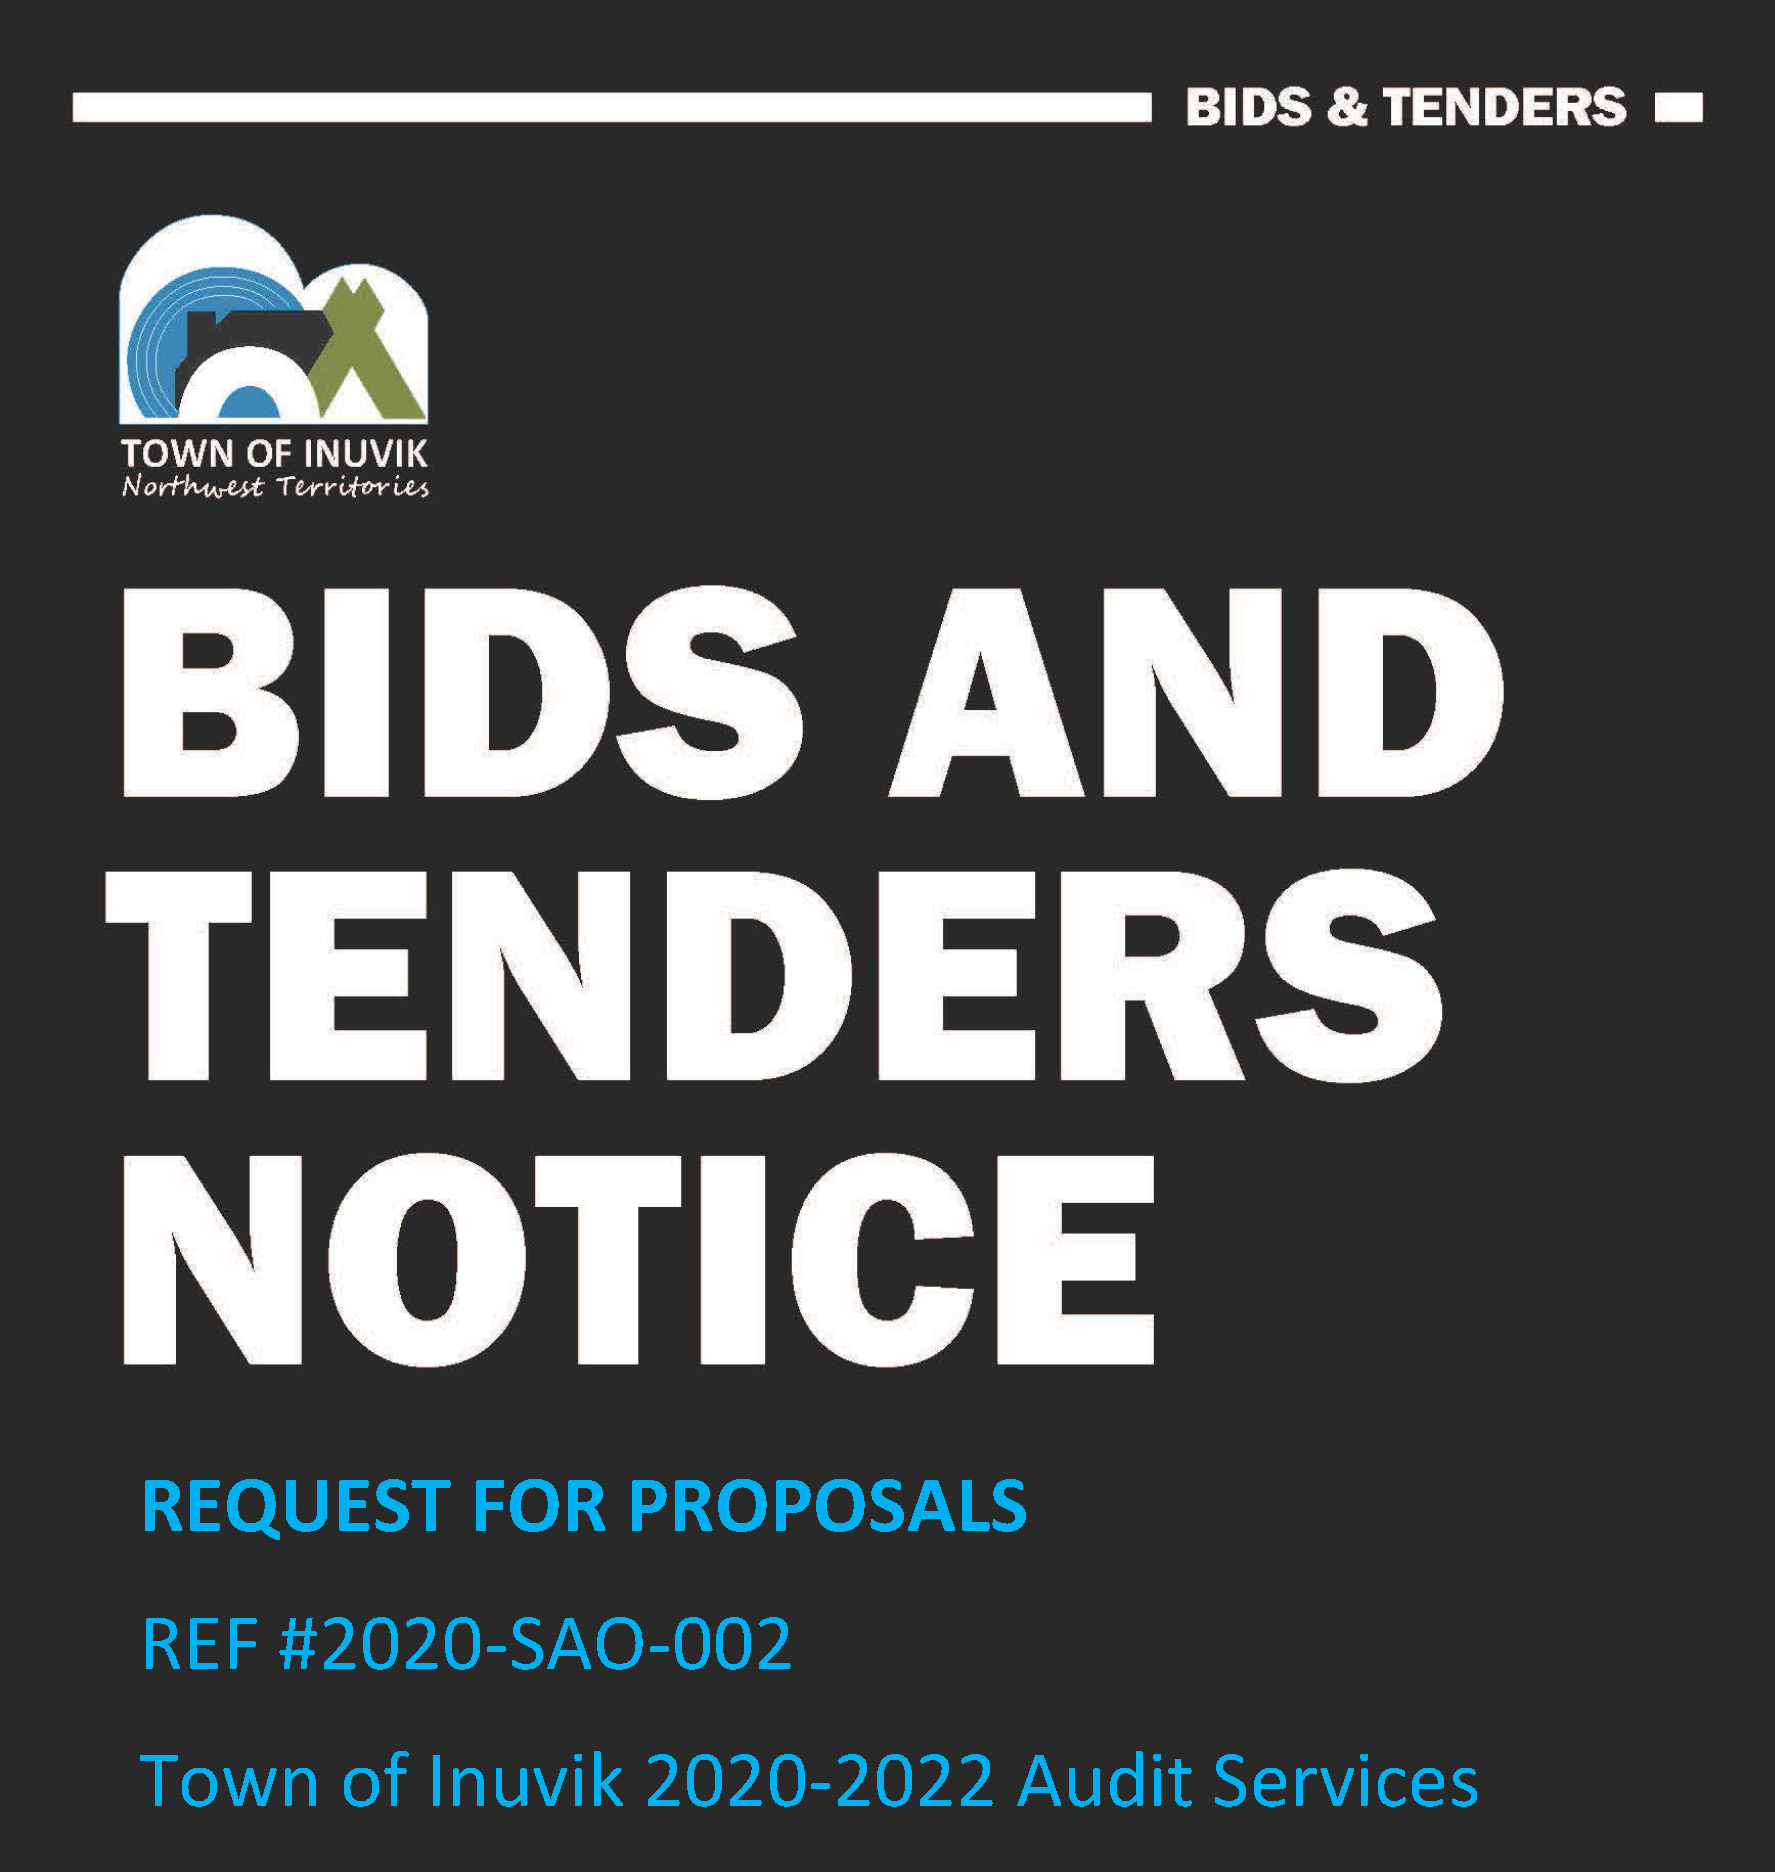 Bids & Tenders - 2020-2022 Audit Services